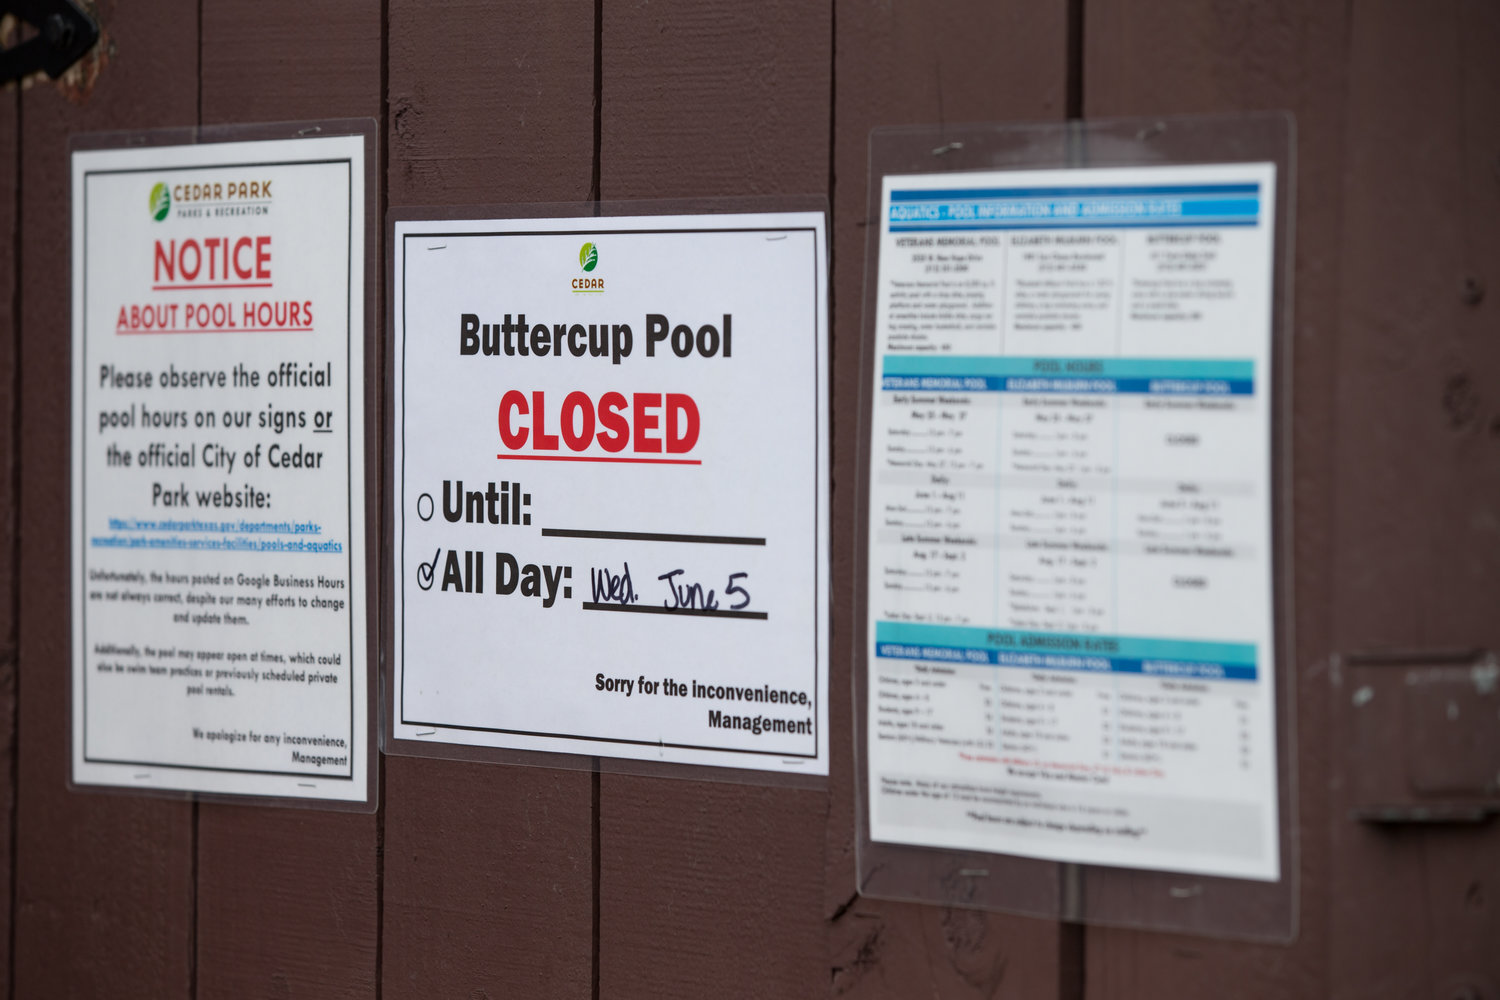 Police investigating incident at Buttercup Pool after young